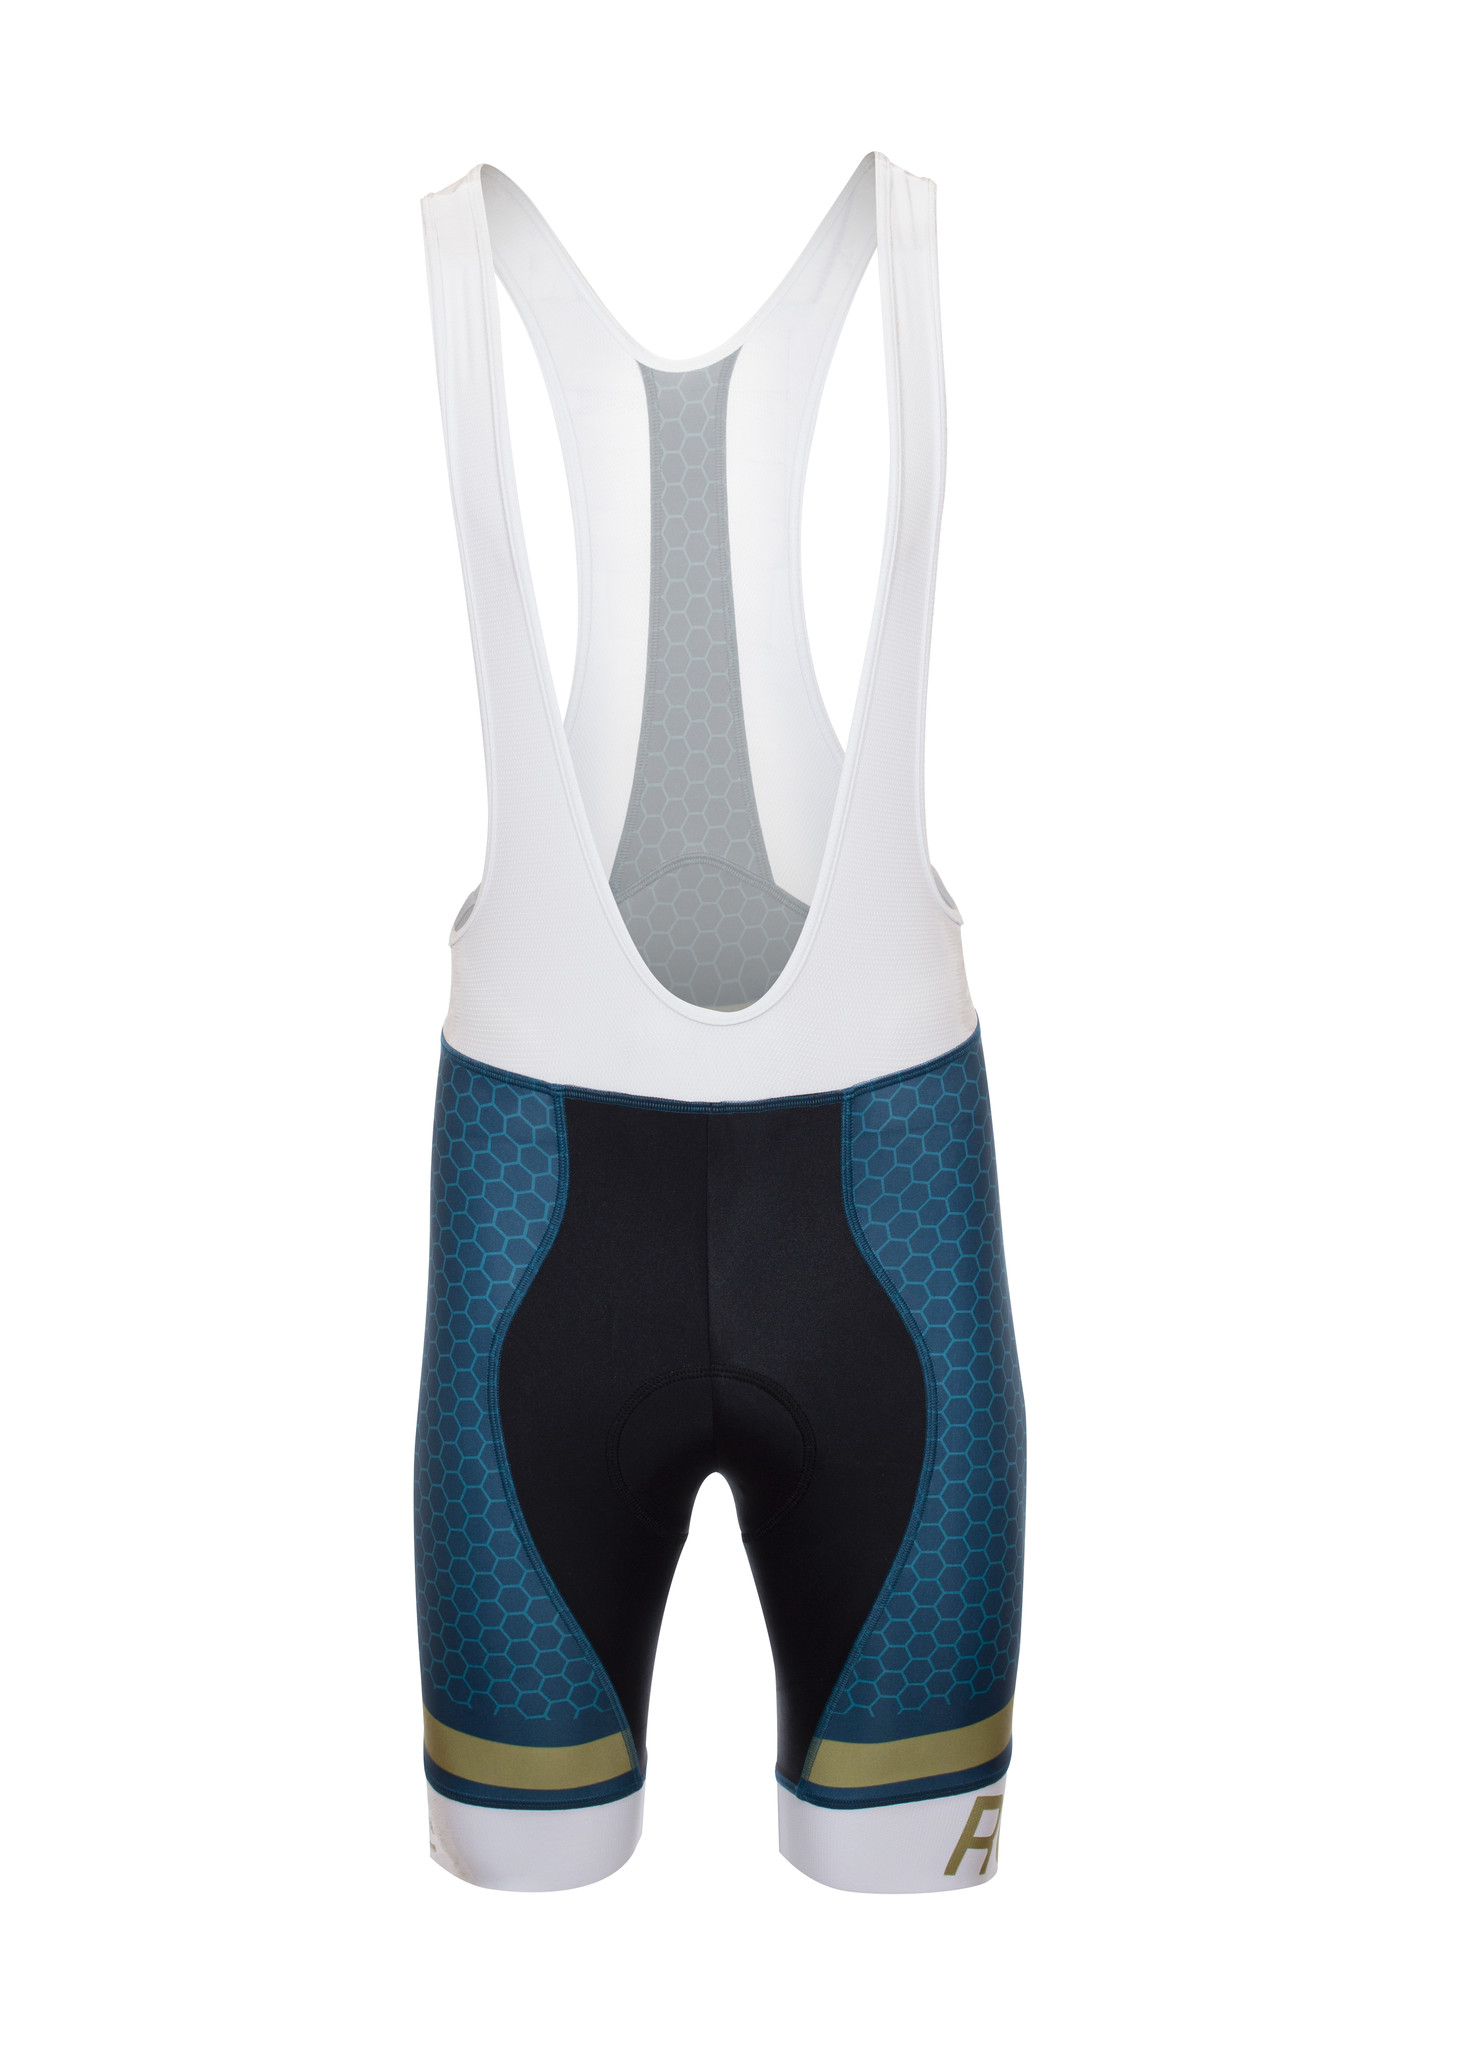 Performance Bib Shorts Championship-Design-1